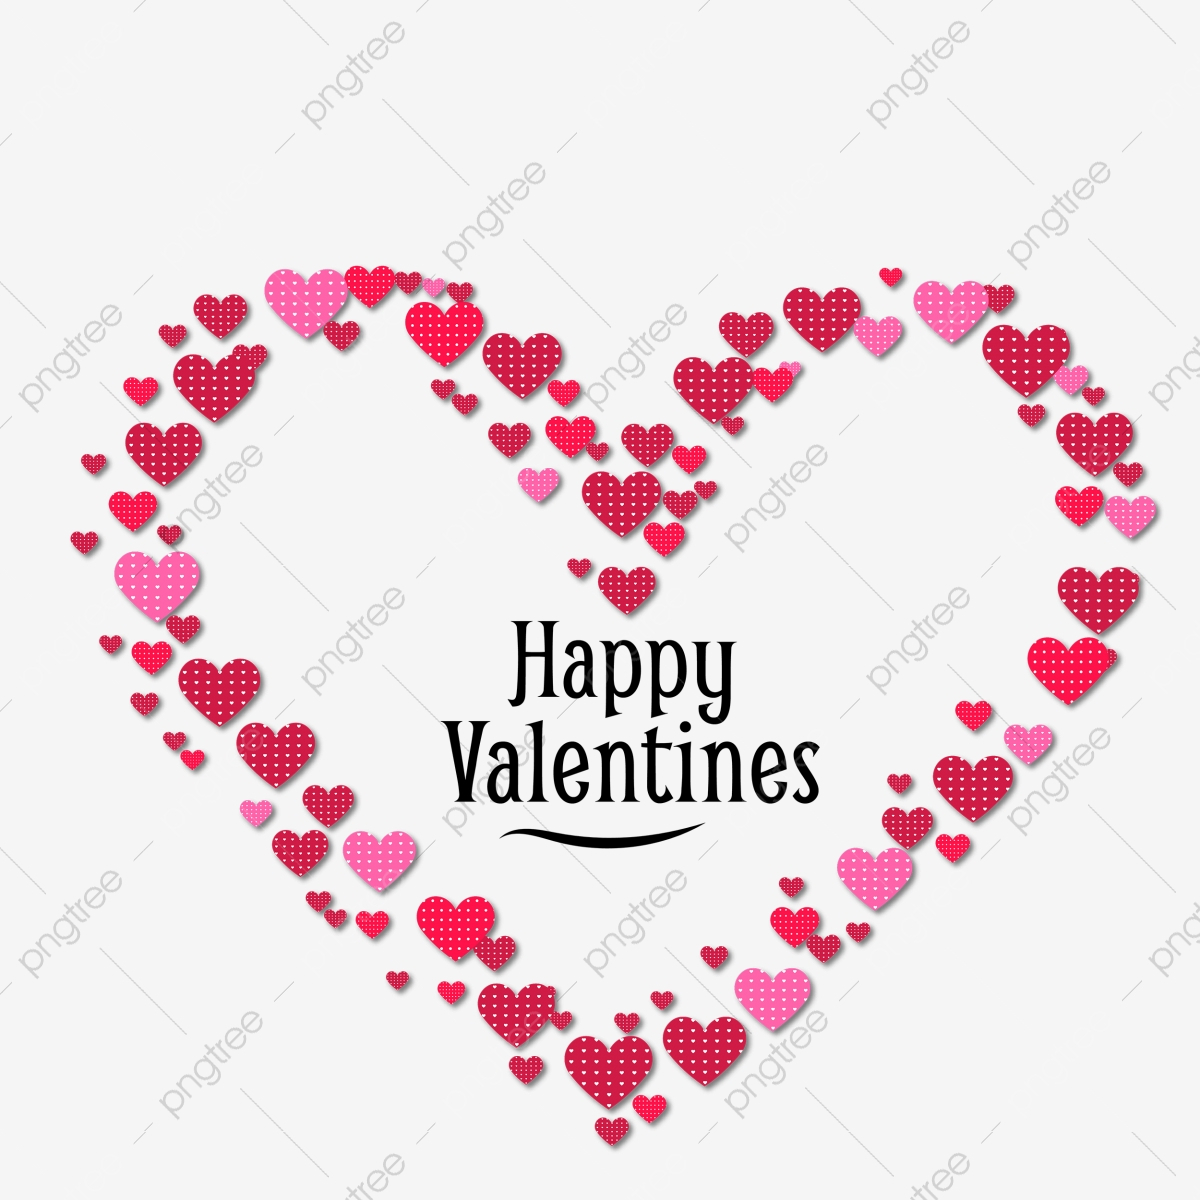 pngtree heart of valentine day png transparent png image